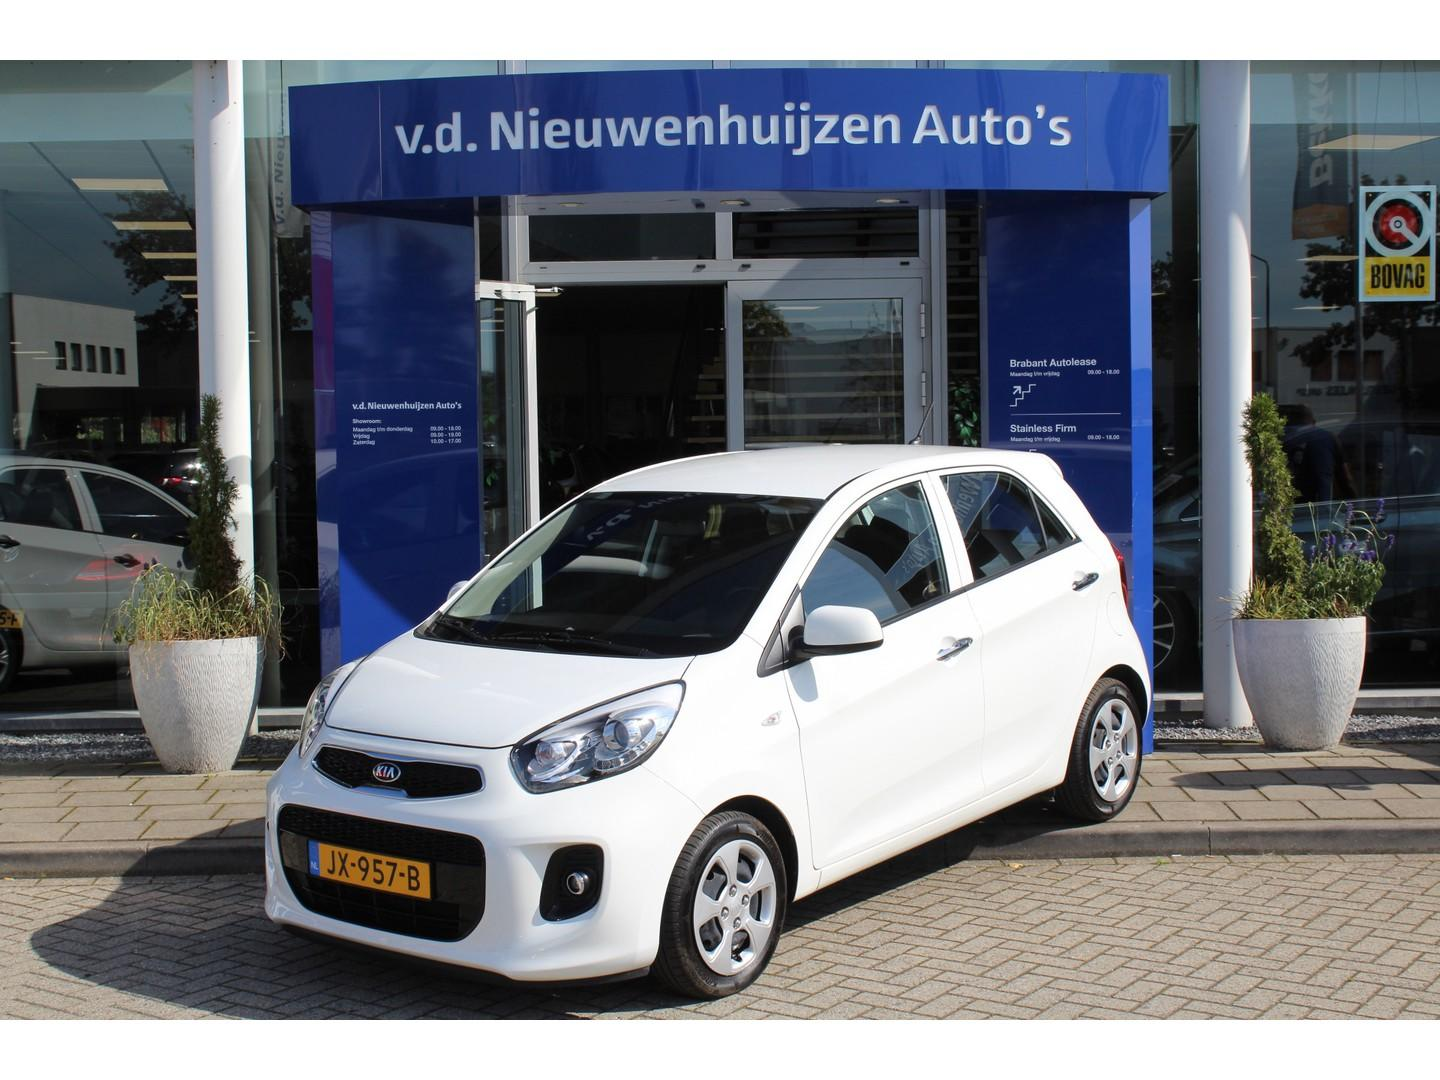 Kia Picanto 1.2 cvvt dynamicline 4 cilinder, climate controle, cruise controle, bluetooth info: dhr elbers 0492-588982 of e.elbers@vdnieuwenhuijzen.nl